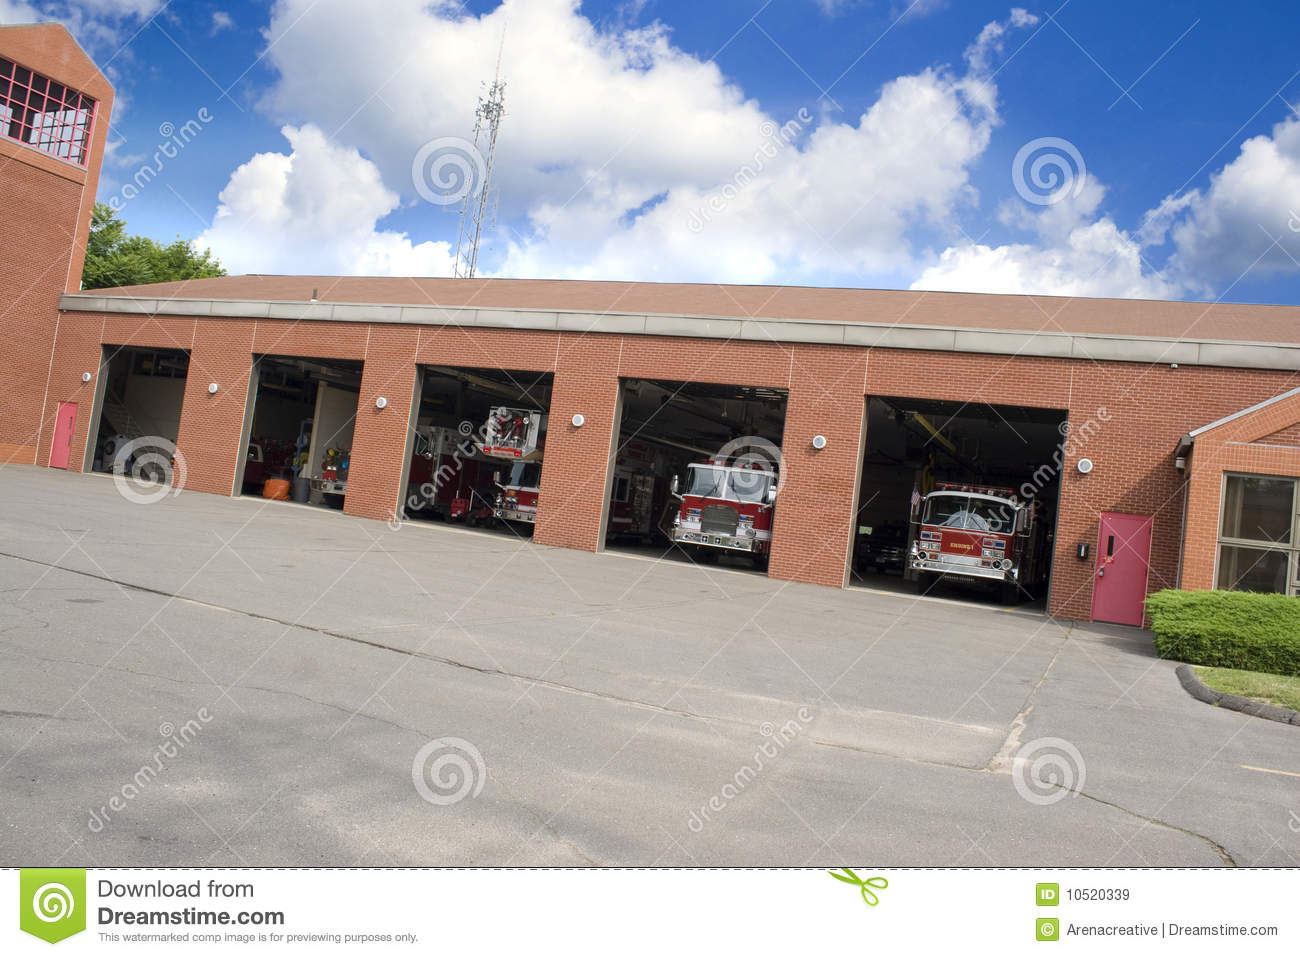 modern fire station stock photos, images, & pictures - 316 images